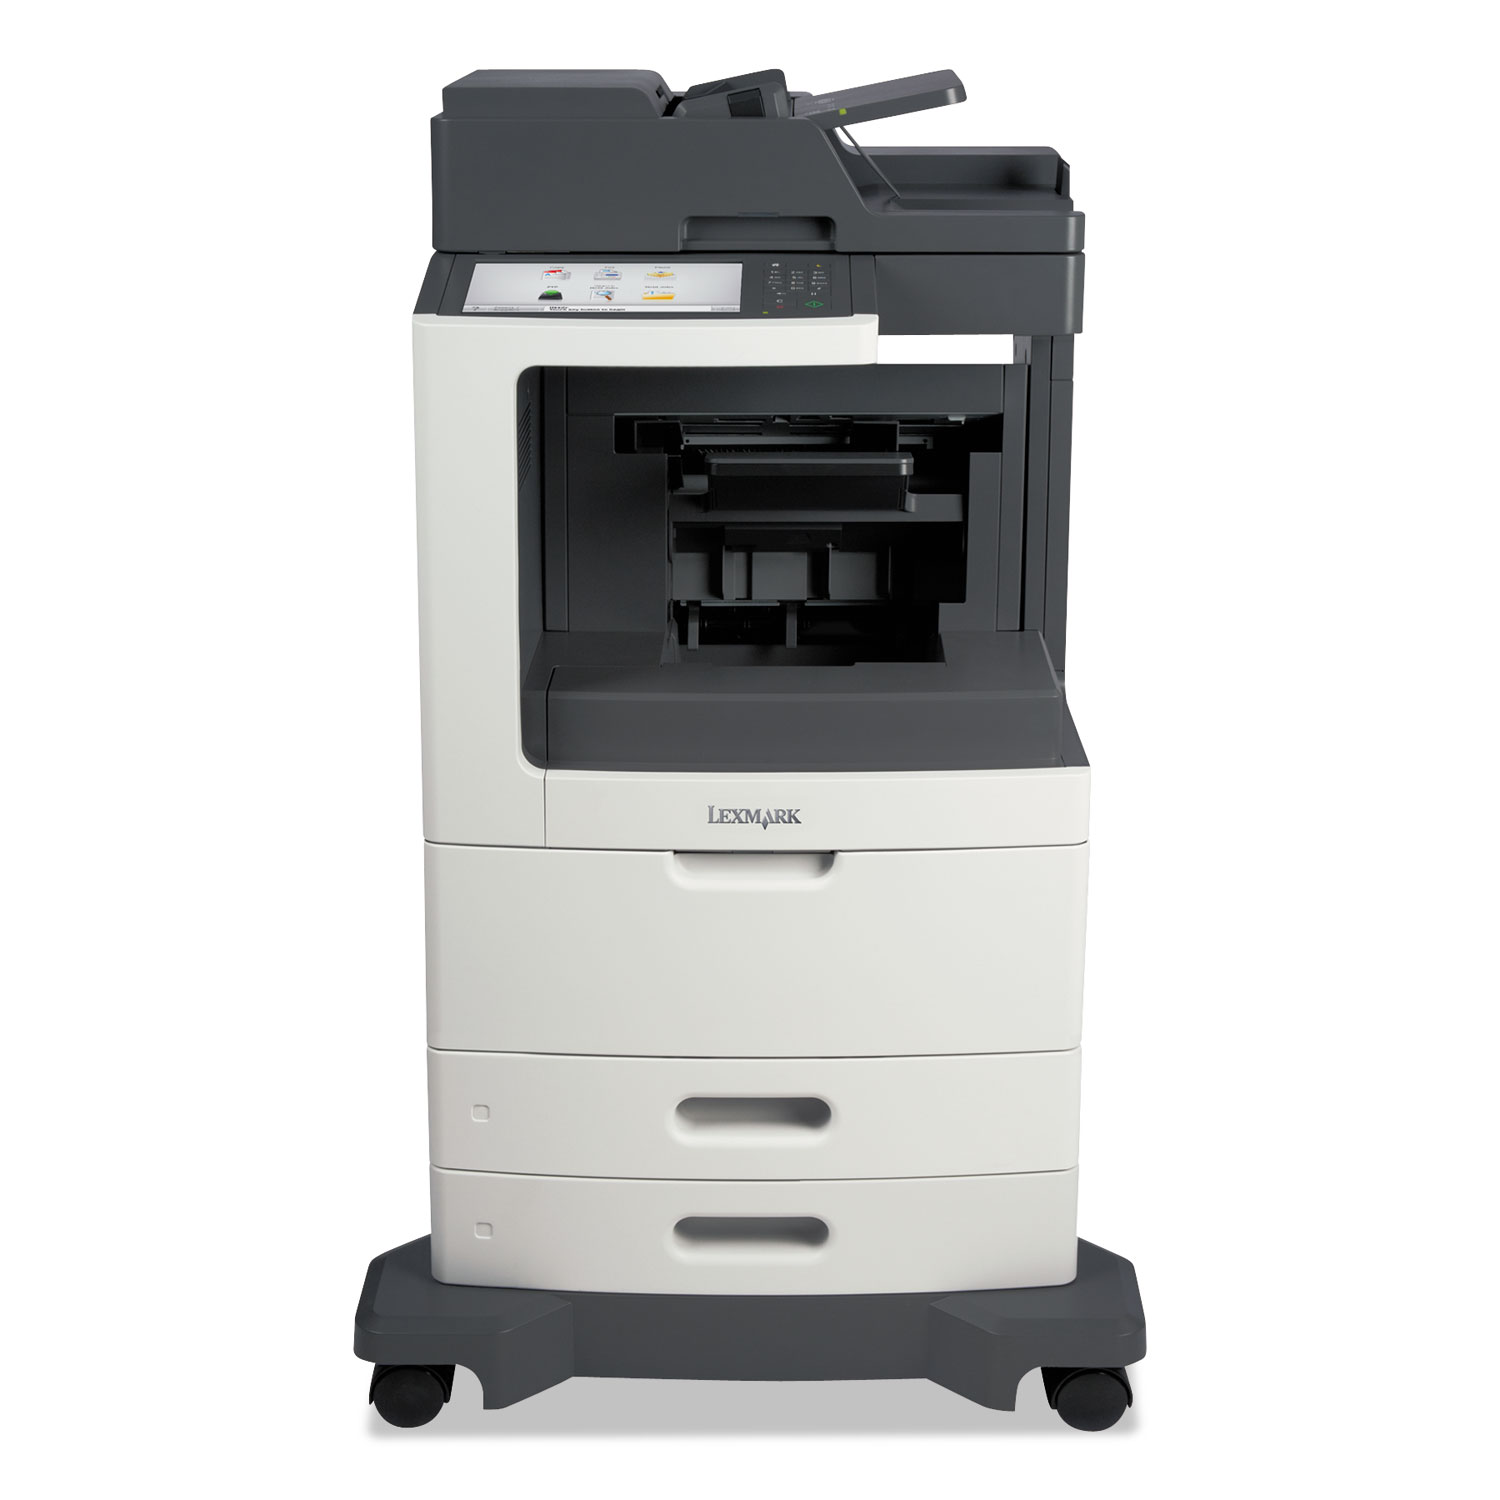 MX812dfe Multifunction Laser Printer, Copy/Fax/Print/Scan